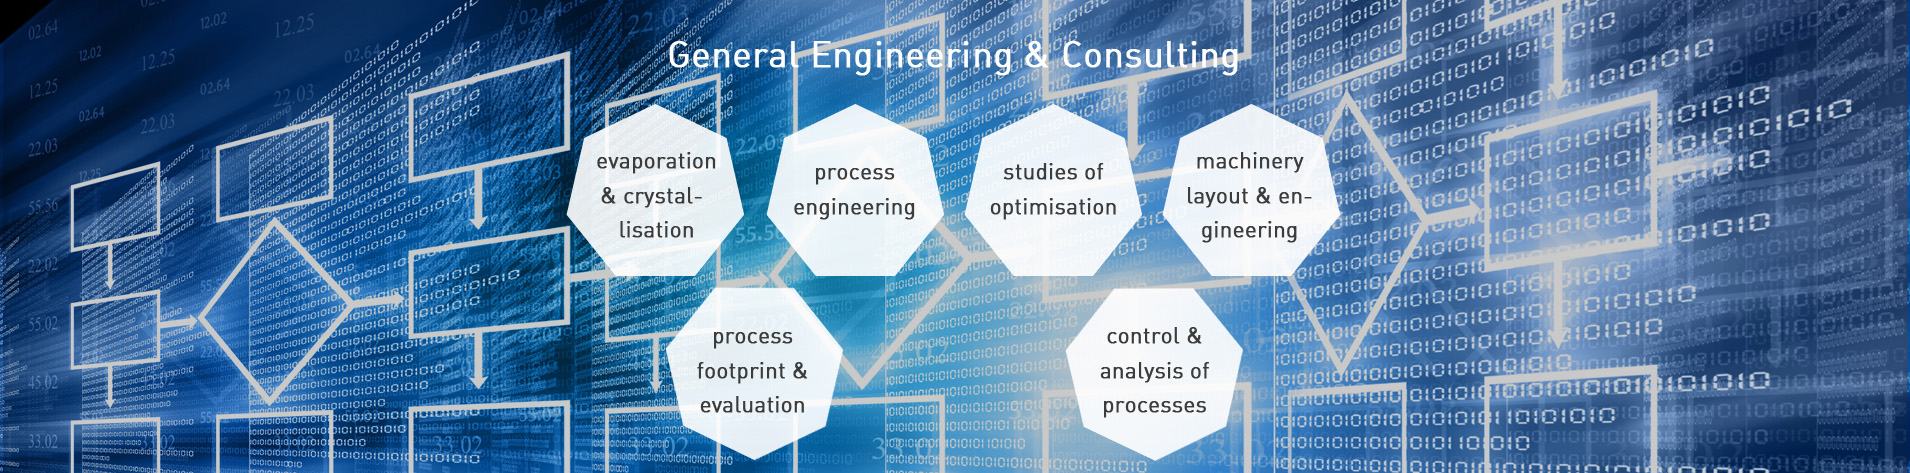 header_general_consulting